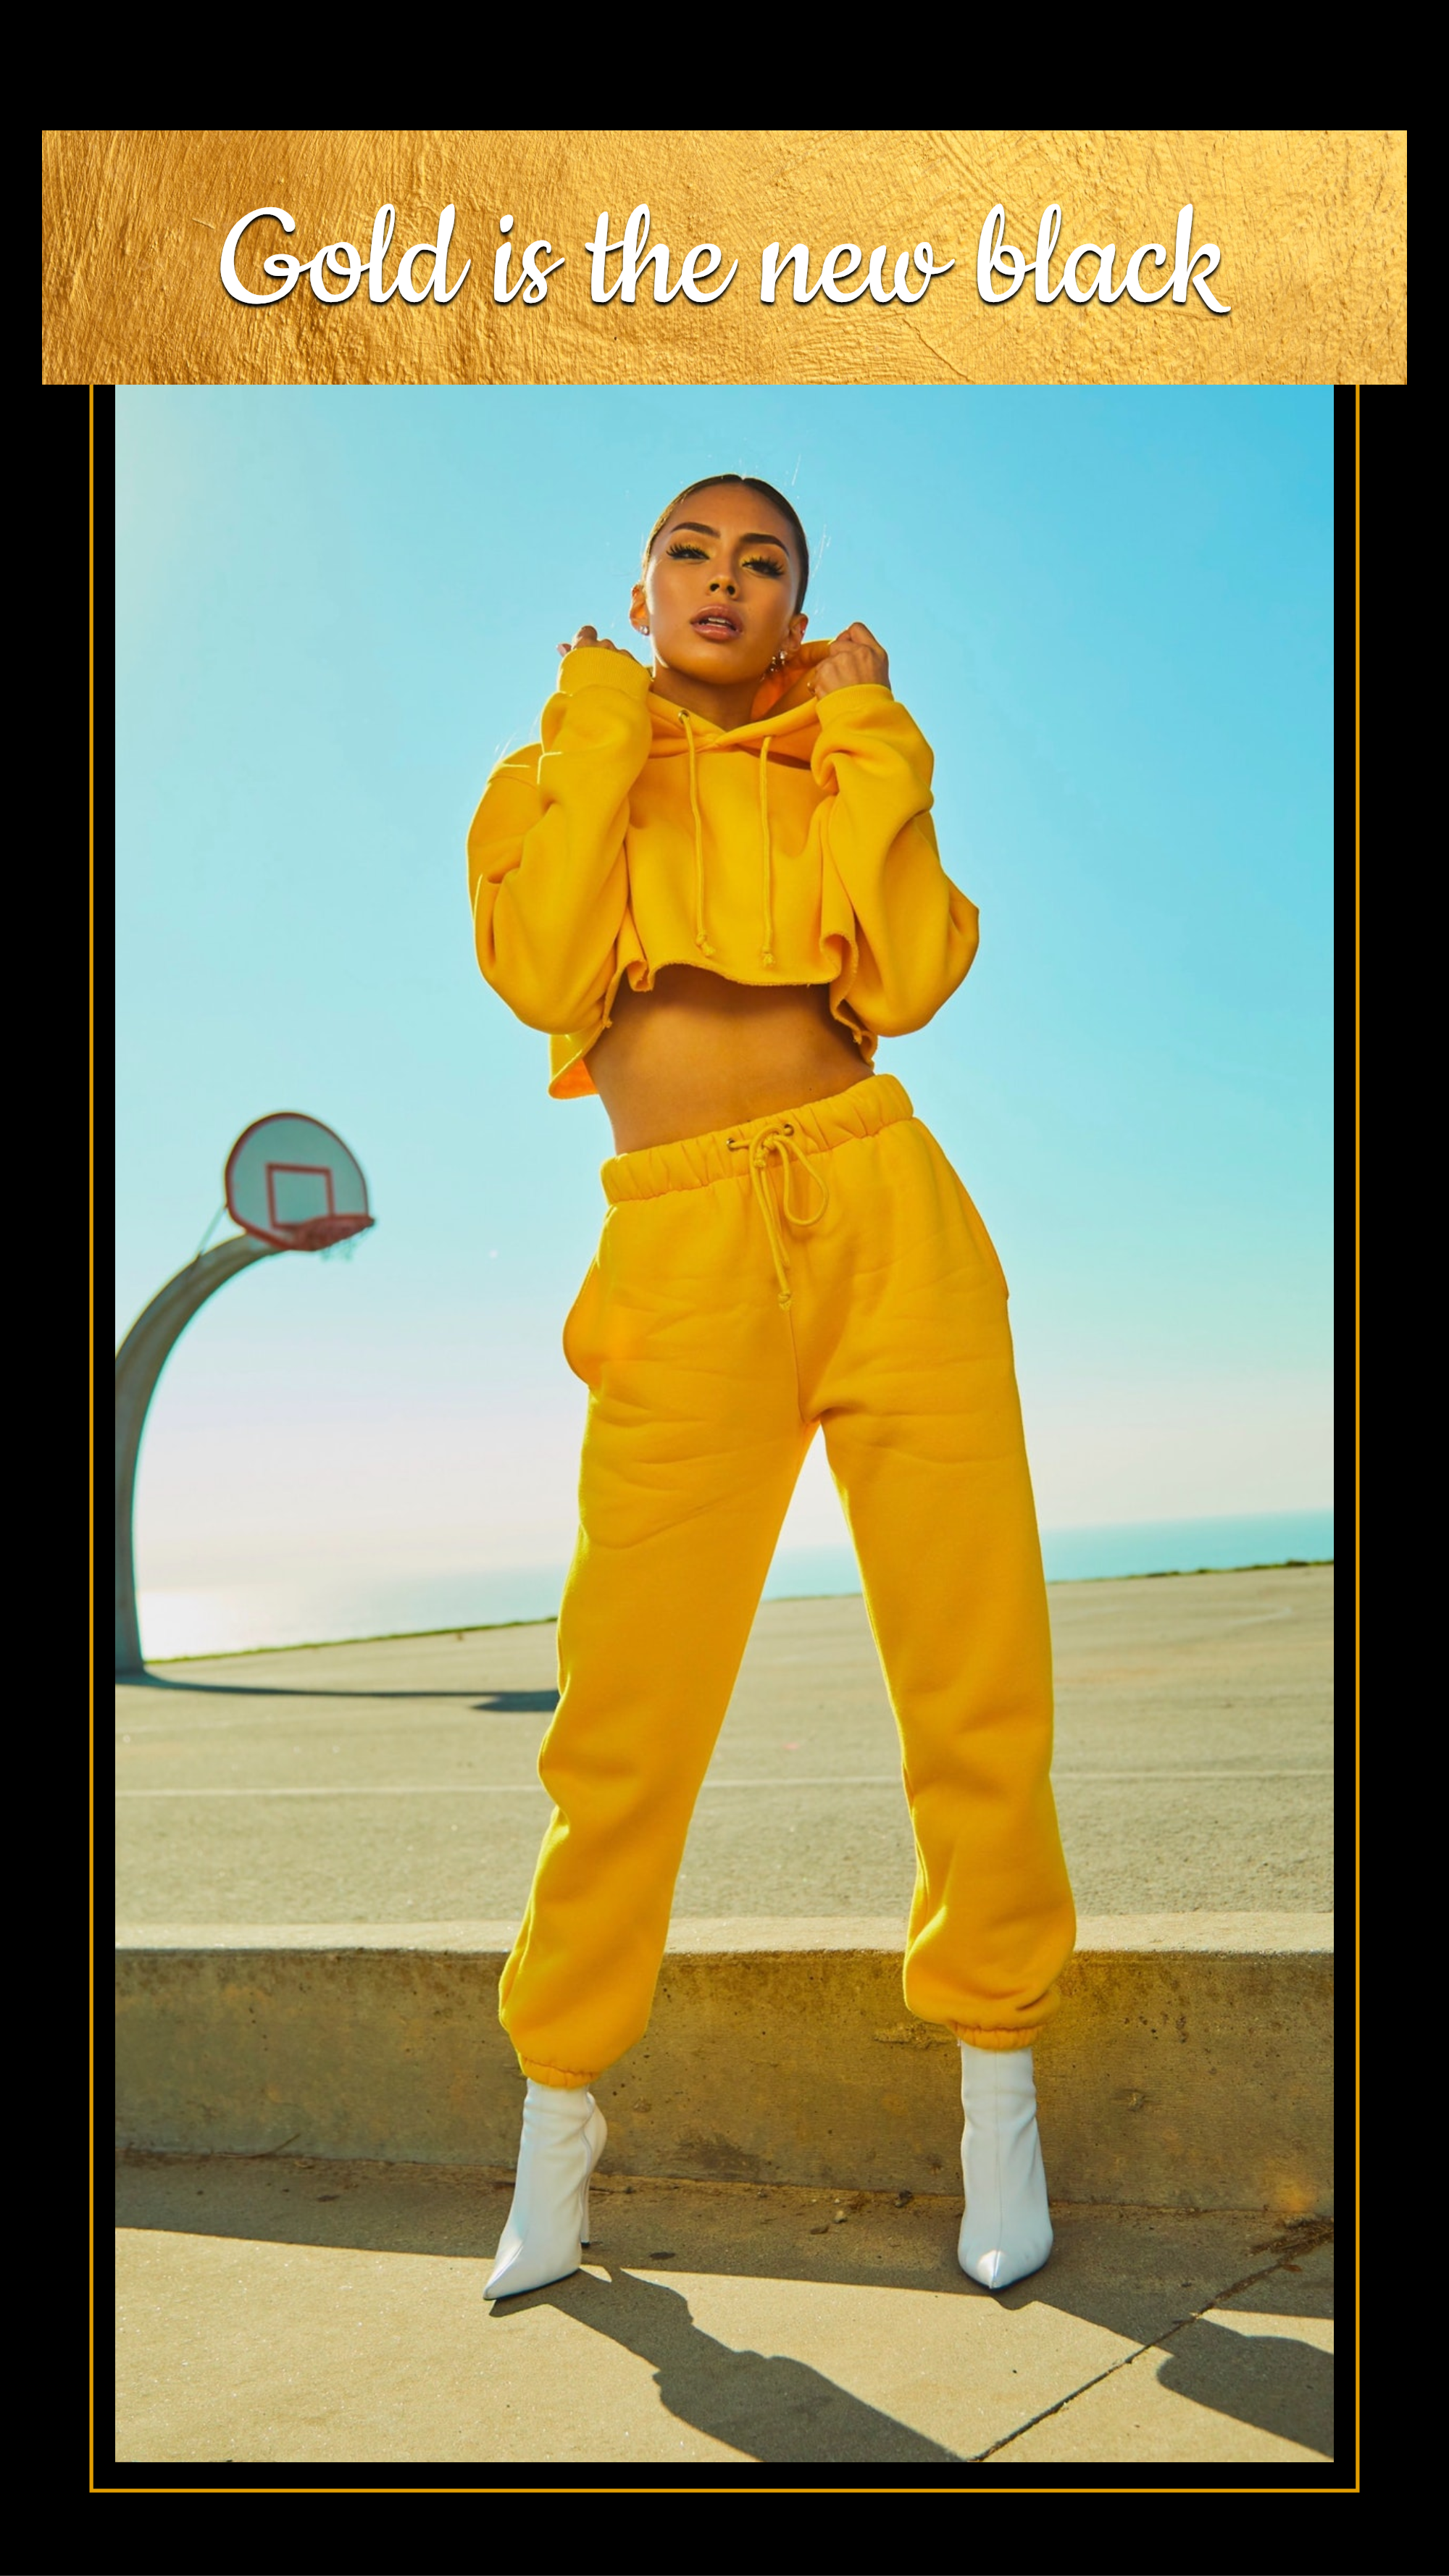 #goldisthenewblack (FREE today) collection - Gold is the new black Instagram Story Template